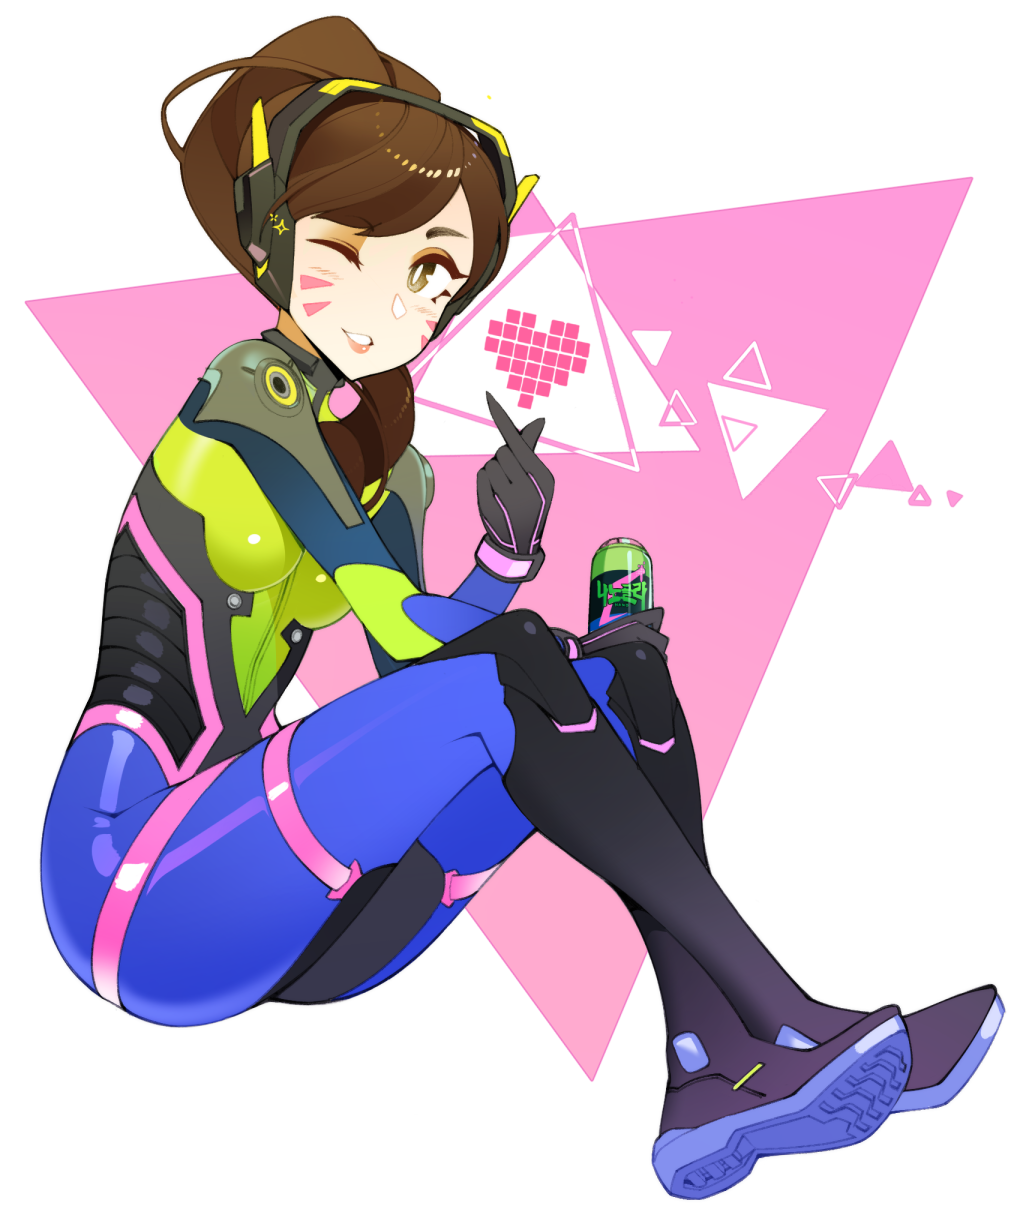 1girl bodysuit brown_eyes brown_hair commentary crossed_legs d.va_(overwatch) english_commentary from_side full_body gloves grey_gloves hair_over_shoulder halphelt hand_up highres holding long_hair looking_at_viewer looking_to_the_side multicolored multicolored_bodysuit multicolored_clothes overwatch parted_lips smile solo whisker_markings